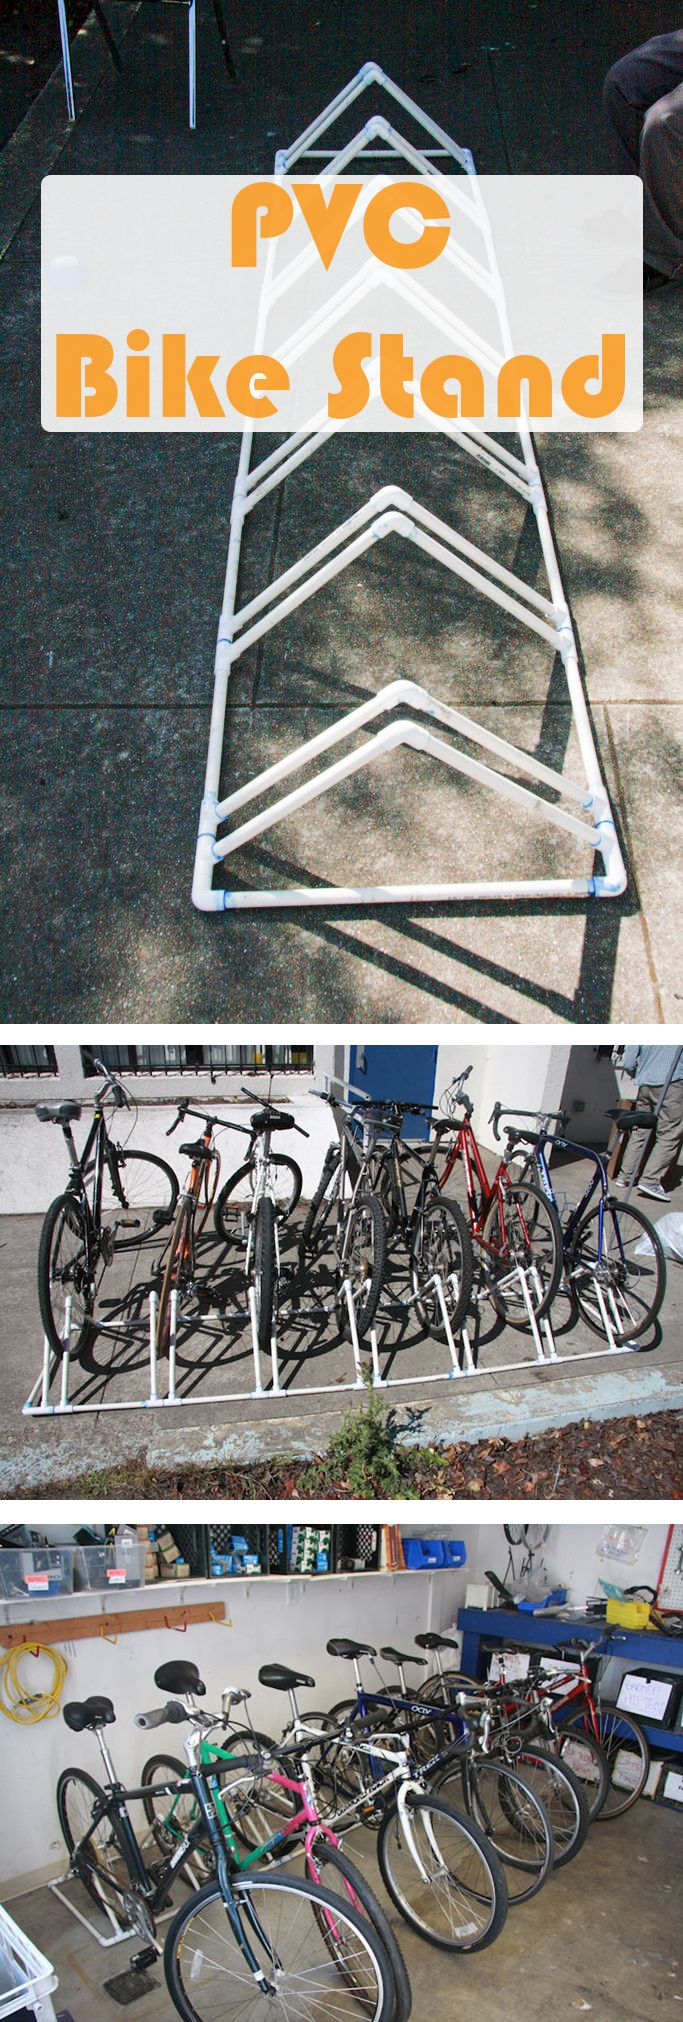 PVC is so versatile. Make a bike rack that holds 7 bikes using some PVC piping!